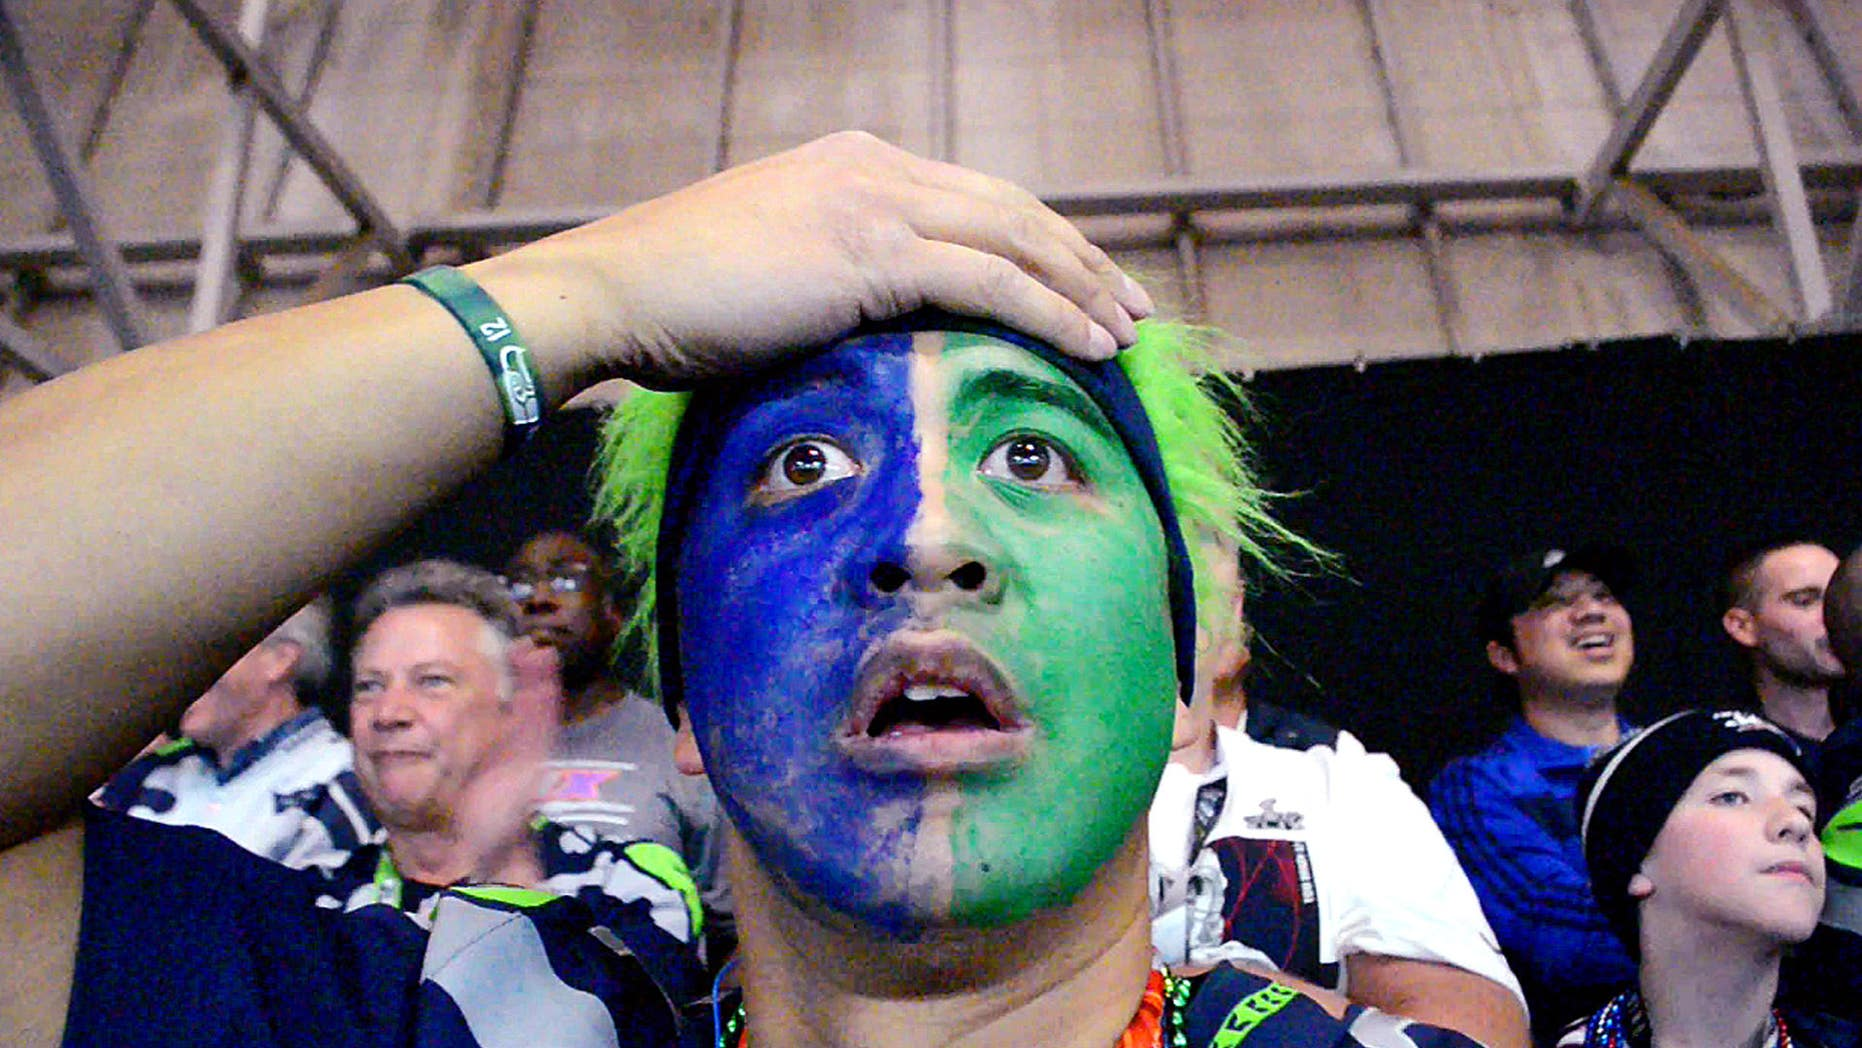 Feb. 1, 2015:  Seattle Seahawks' fan grabs his head in the final moments of the Super Bowl as the Seahawks lose to the New England Patriots.